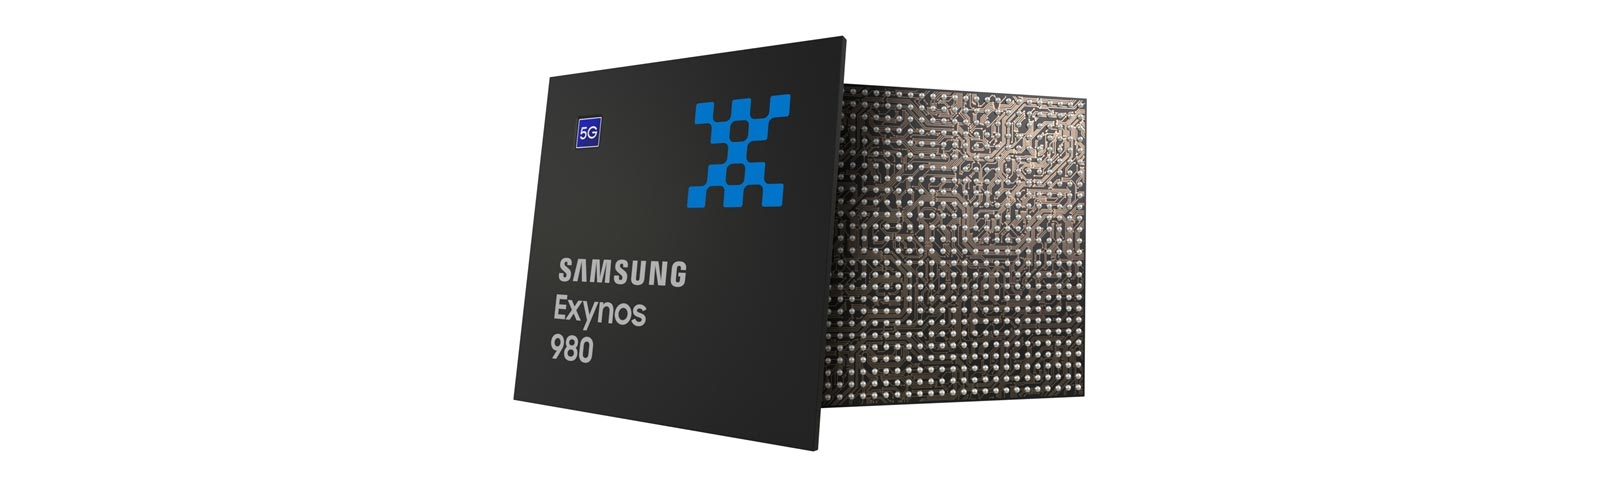 Samsung unveils its first chipset with an integrated 5G modem - the Exynos 980